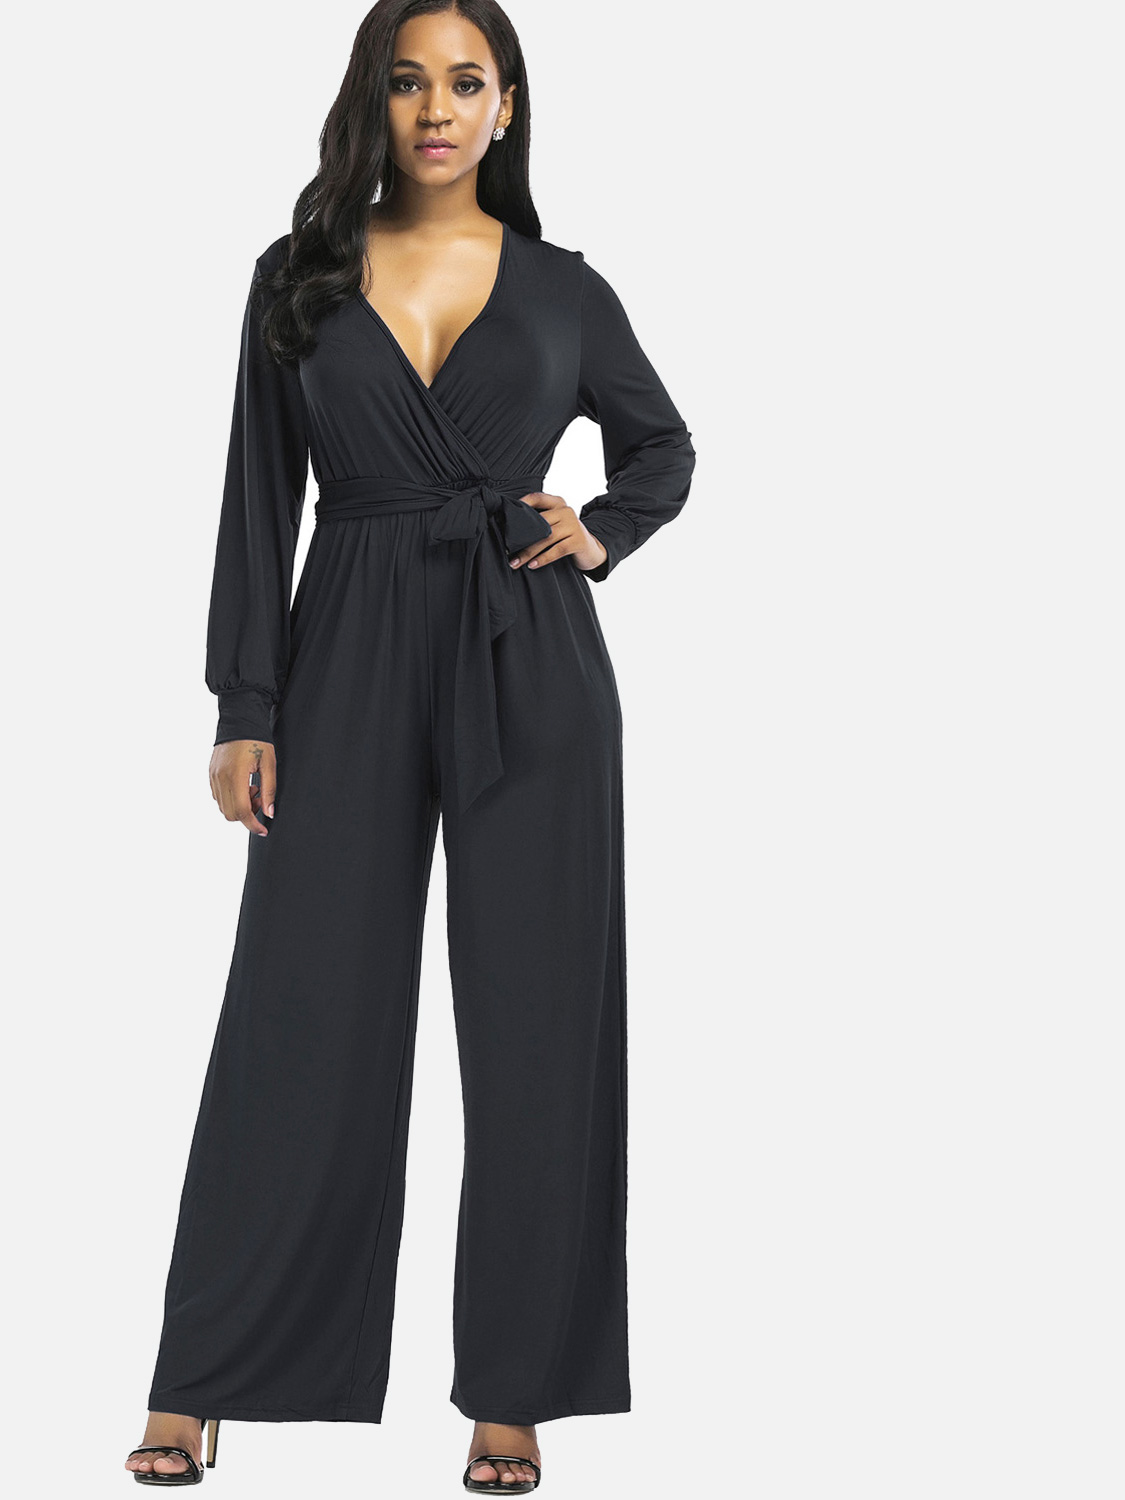 ec5fa2728323 US  34 - Stretch Rompers Sexy Deep V Women Wide Leg Jumpsuits with Belts -  www.onebling.com